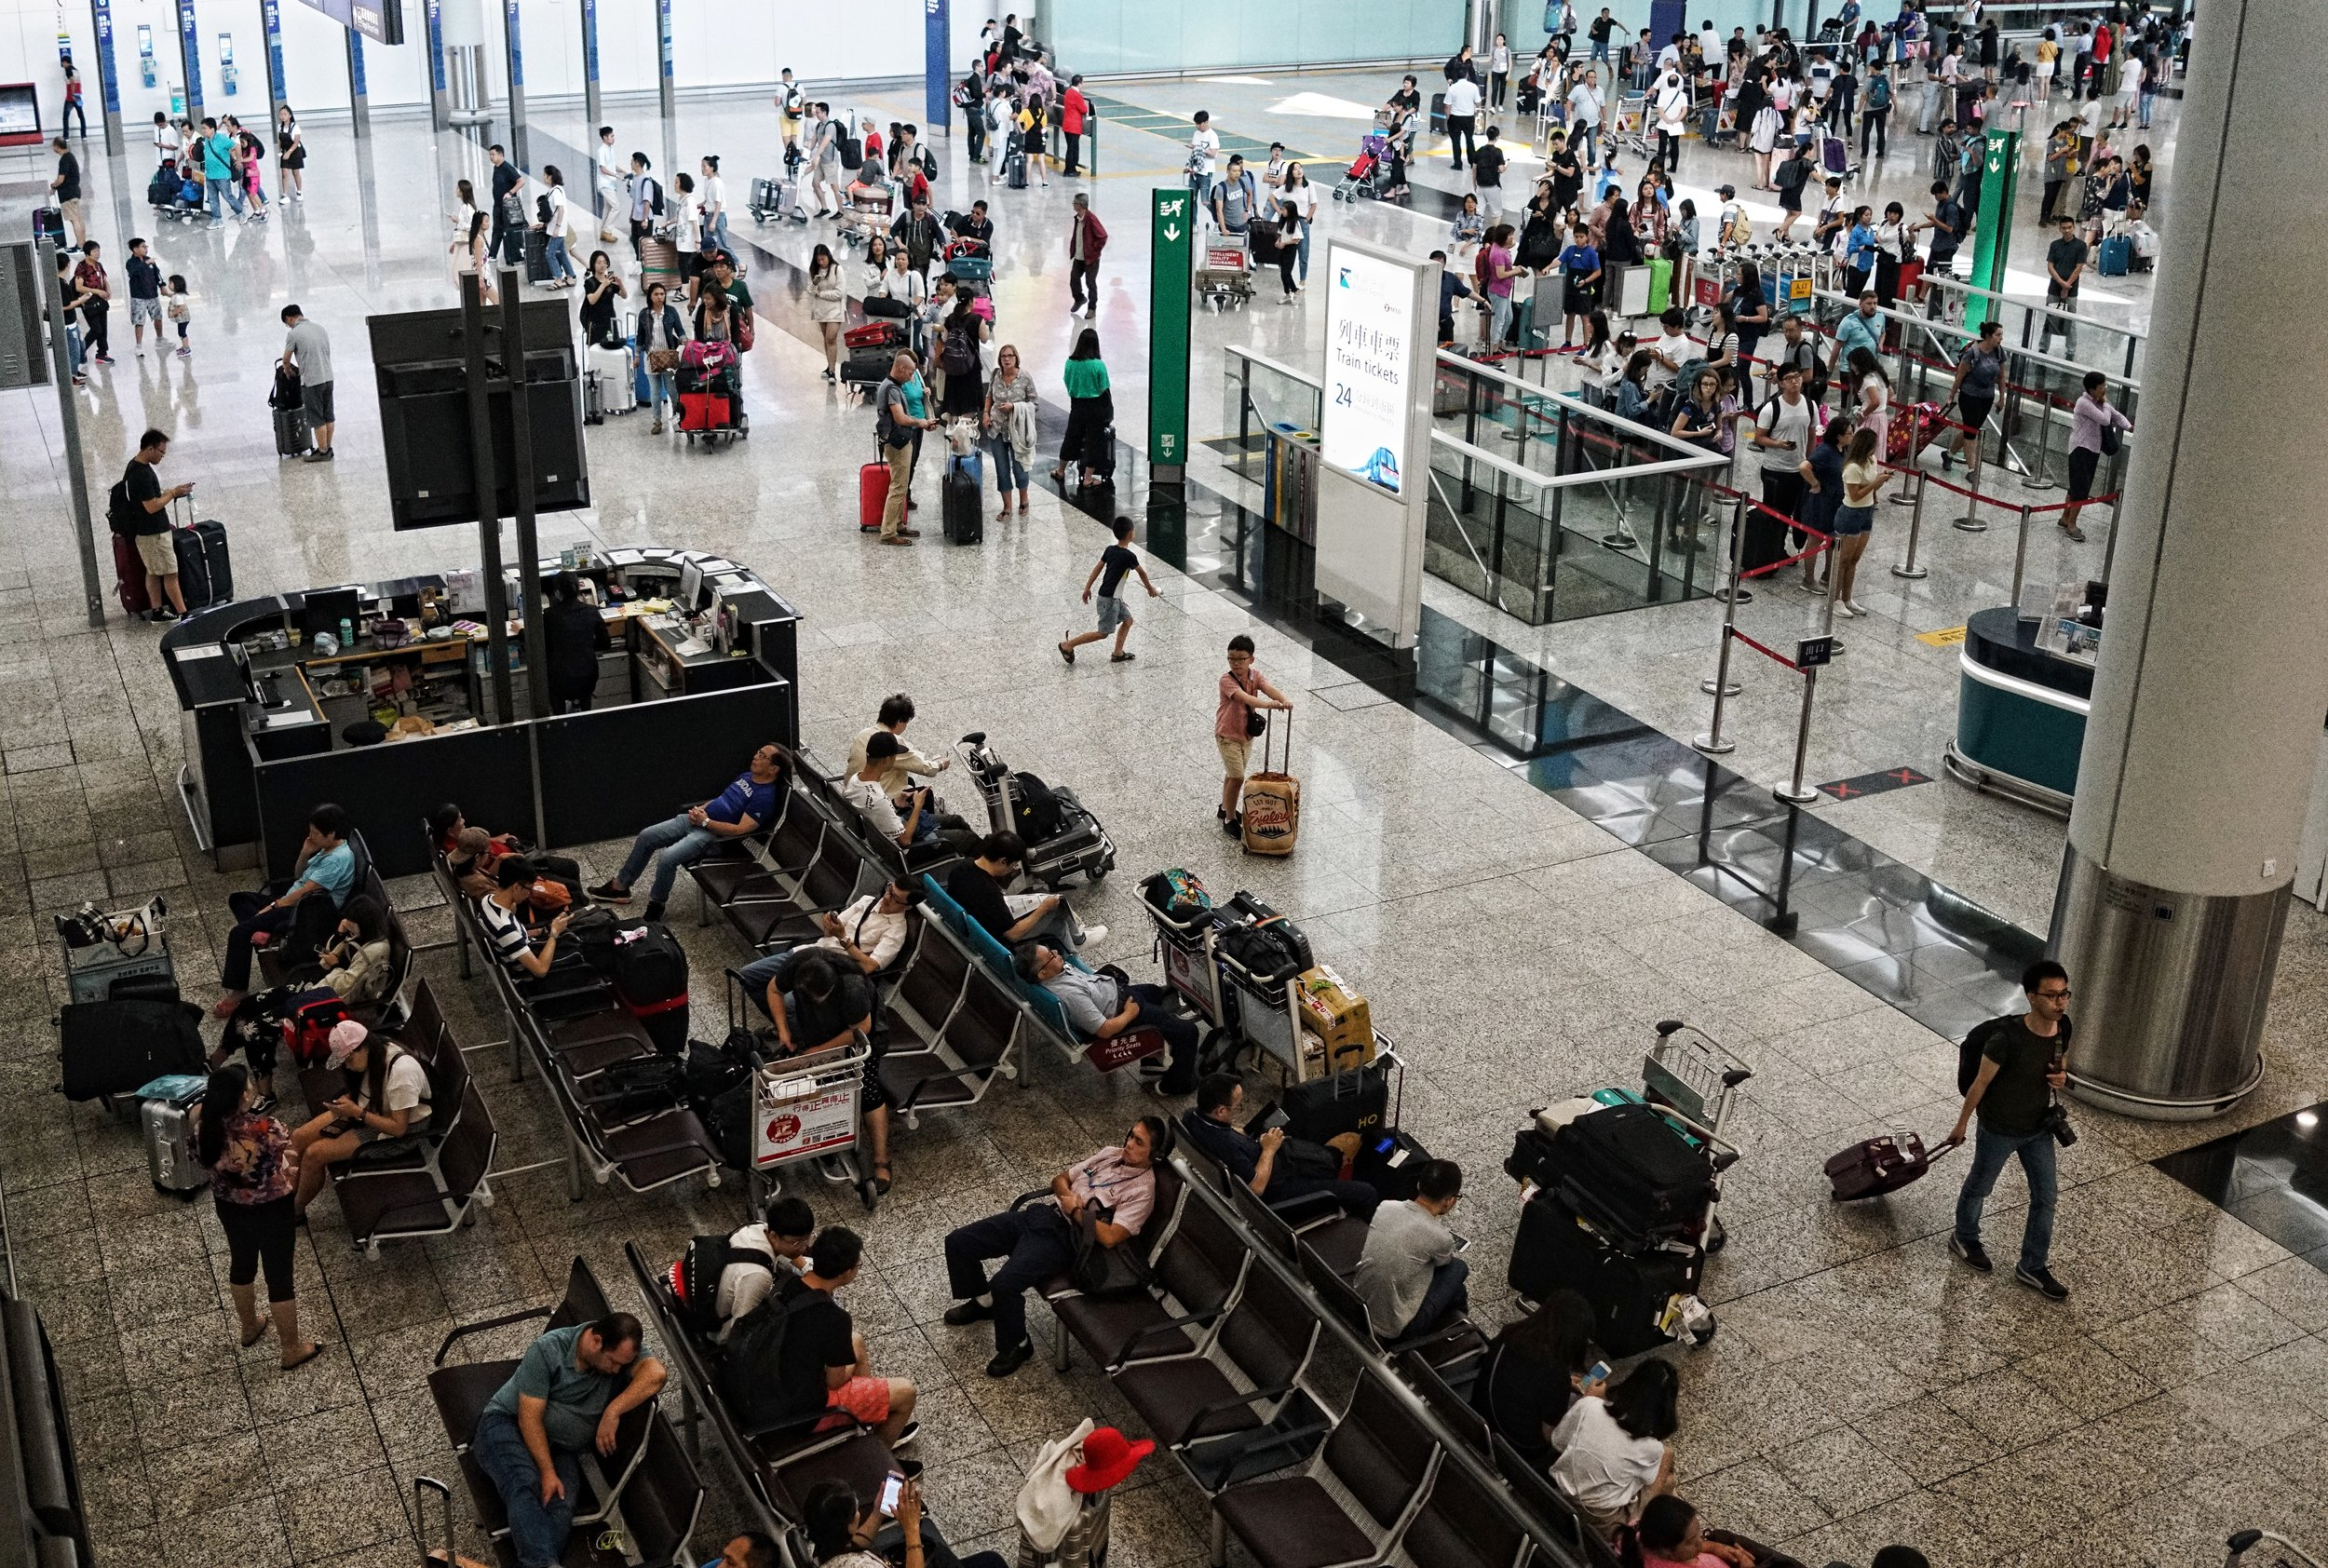 In transit at Hong Kong International Airport? contact me and I will show you the best of Hong Kong in 5 hours, last minute | same day bookings available -